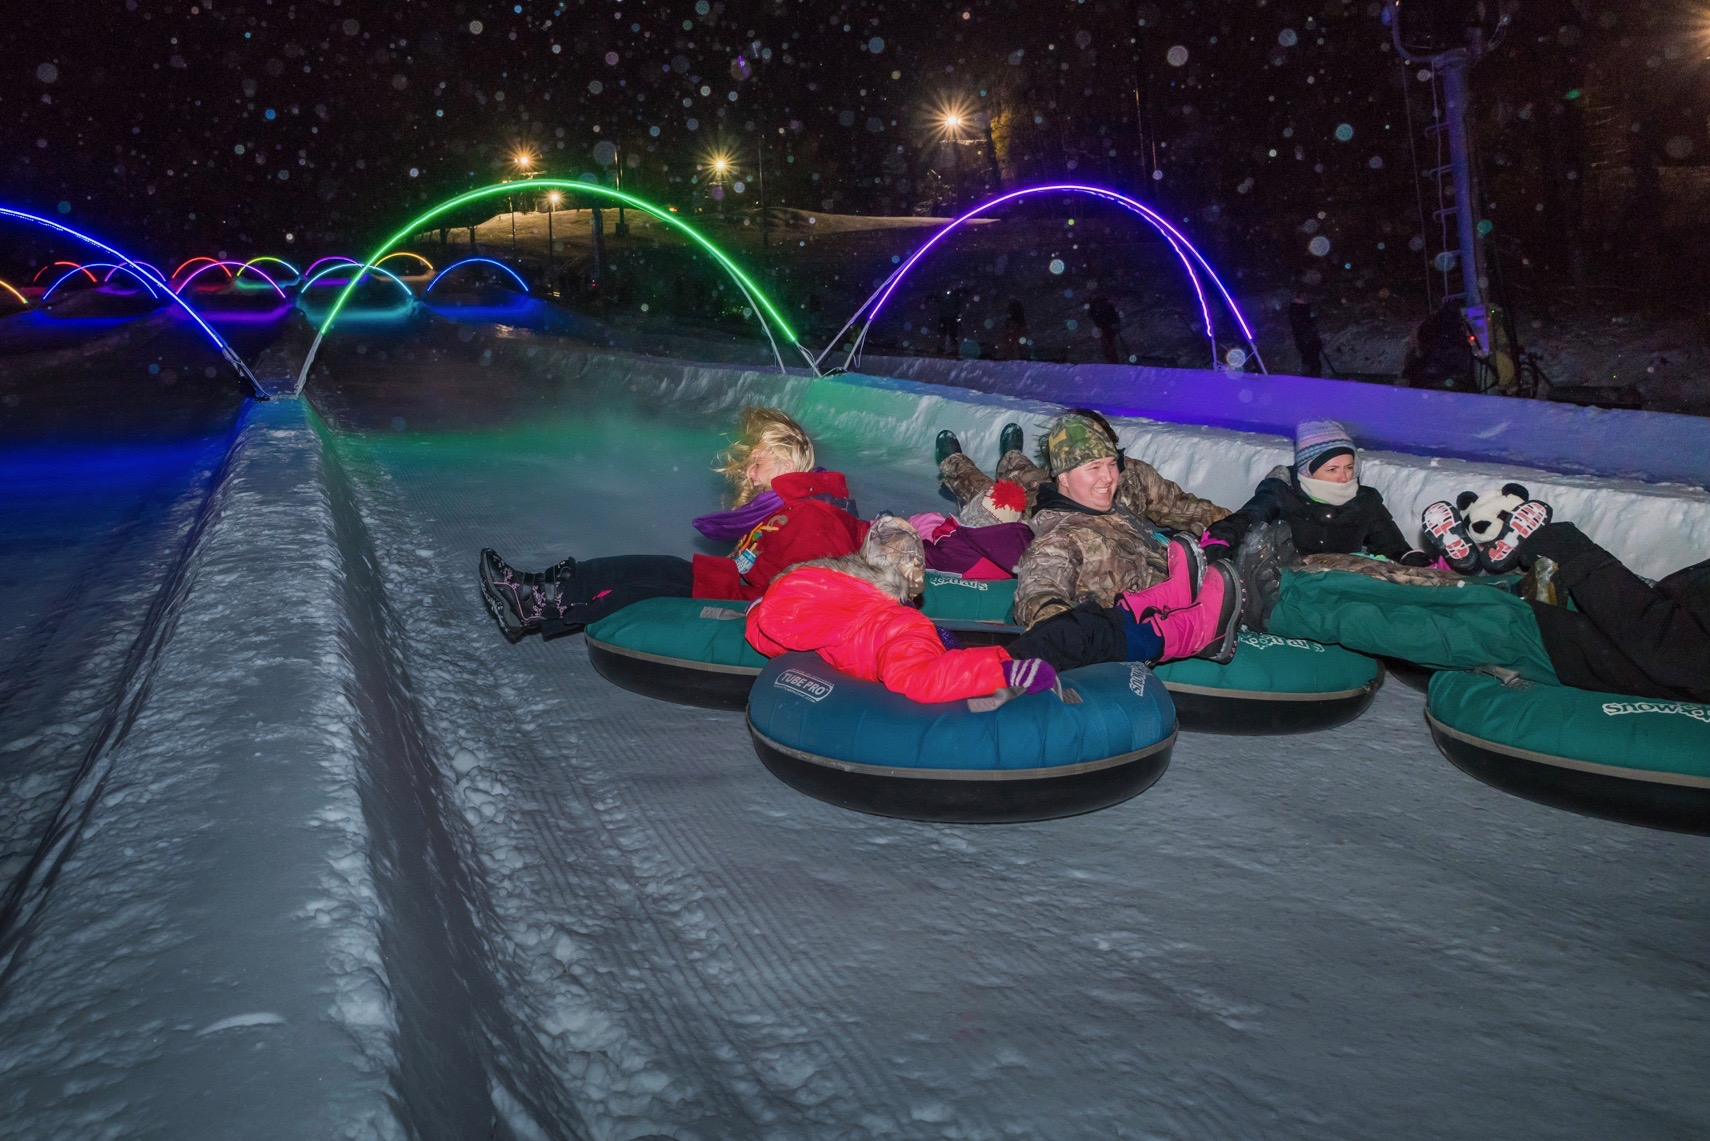 Tubing Park Updates for 2017-'18